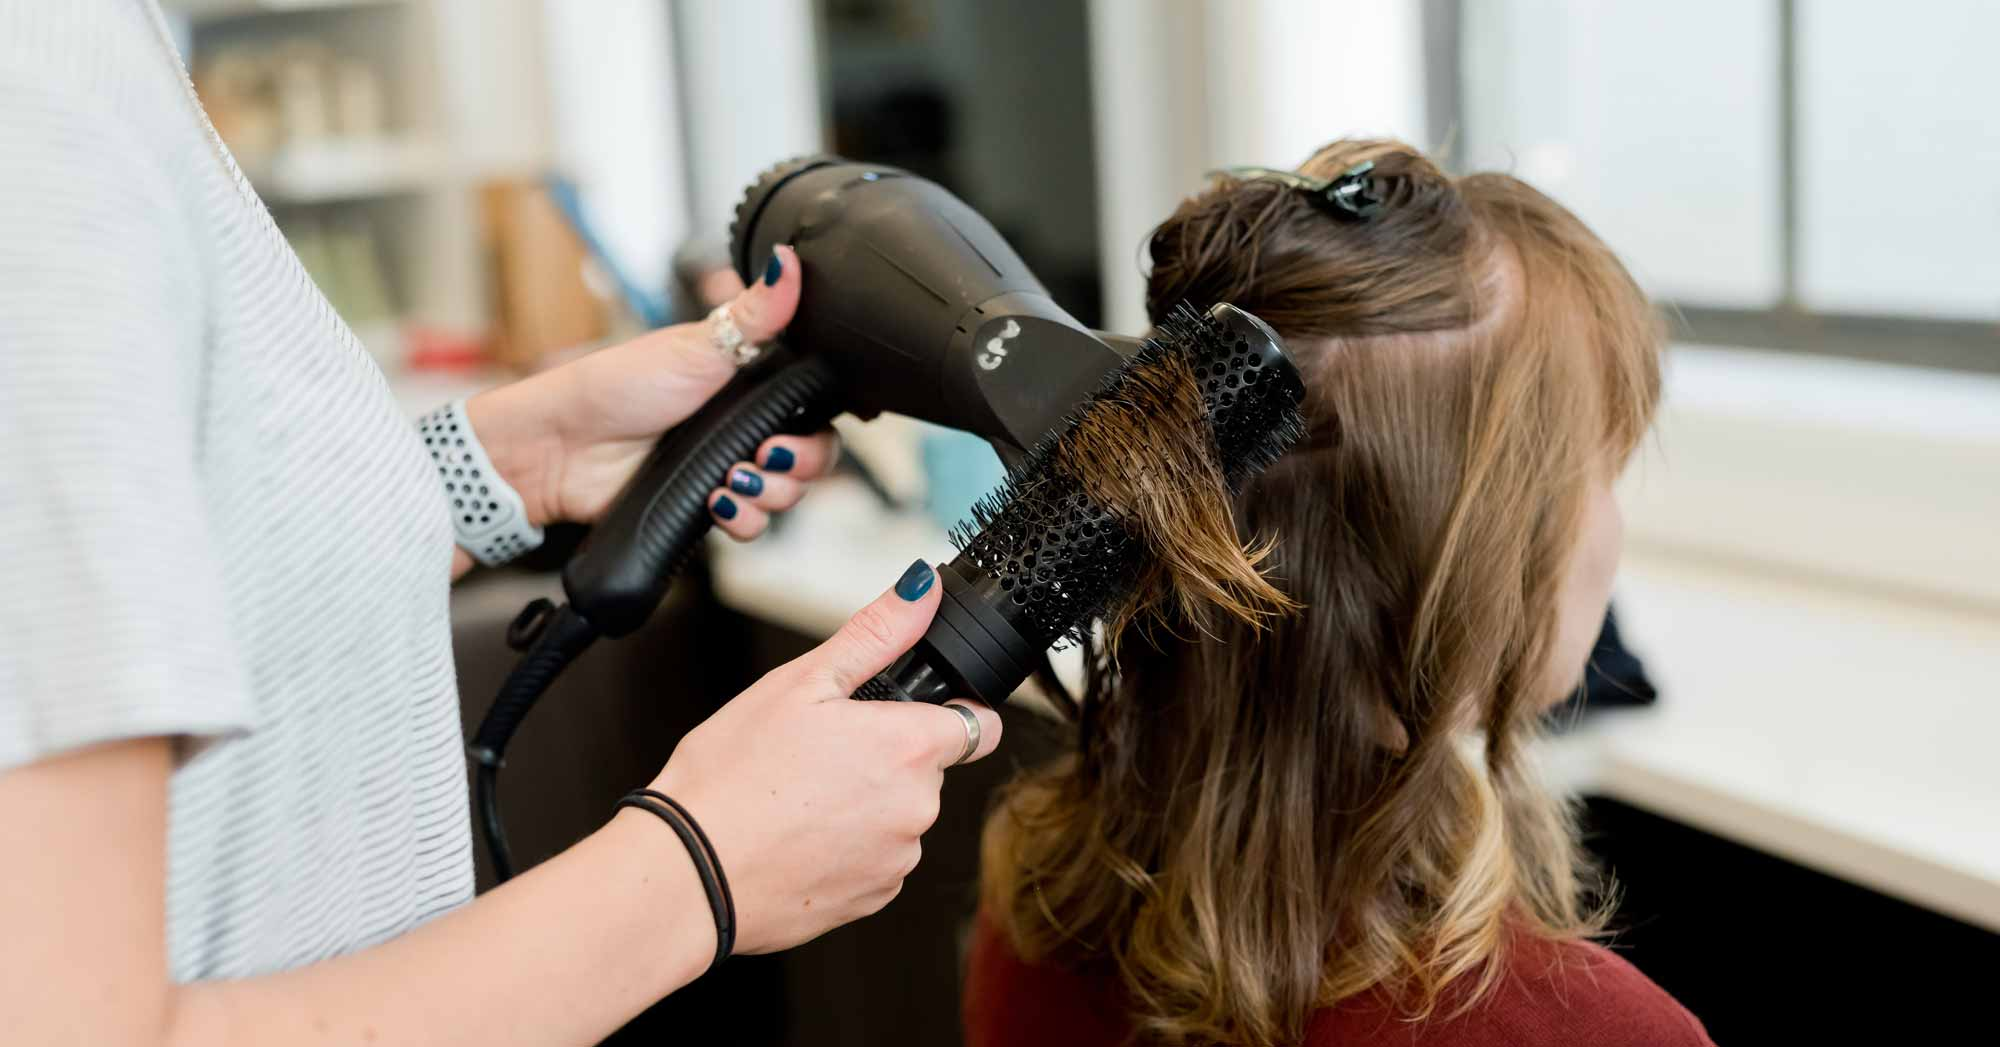 Woman blow drying hair in hairdressers